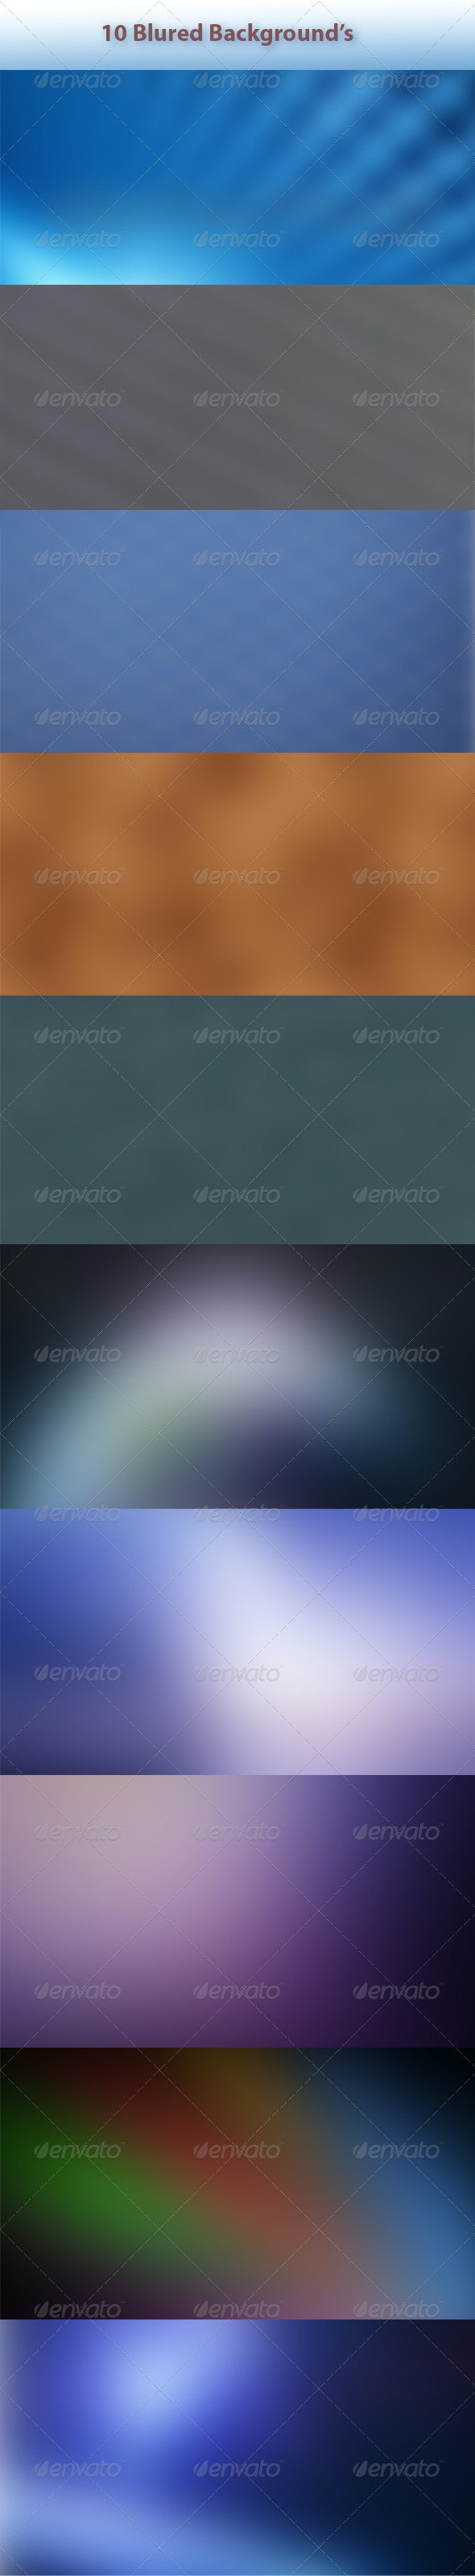 10 Blur Backgrounds - Abstract Backgrounds